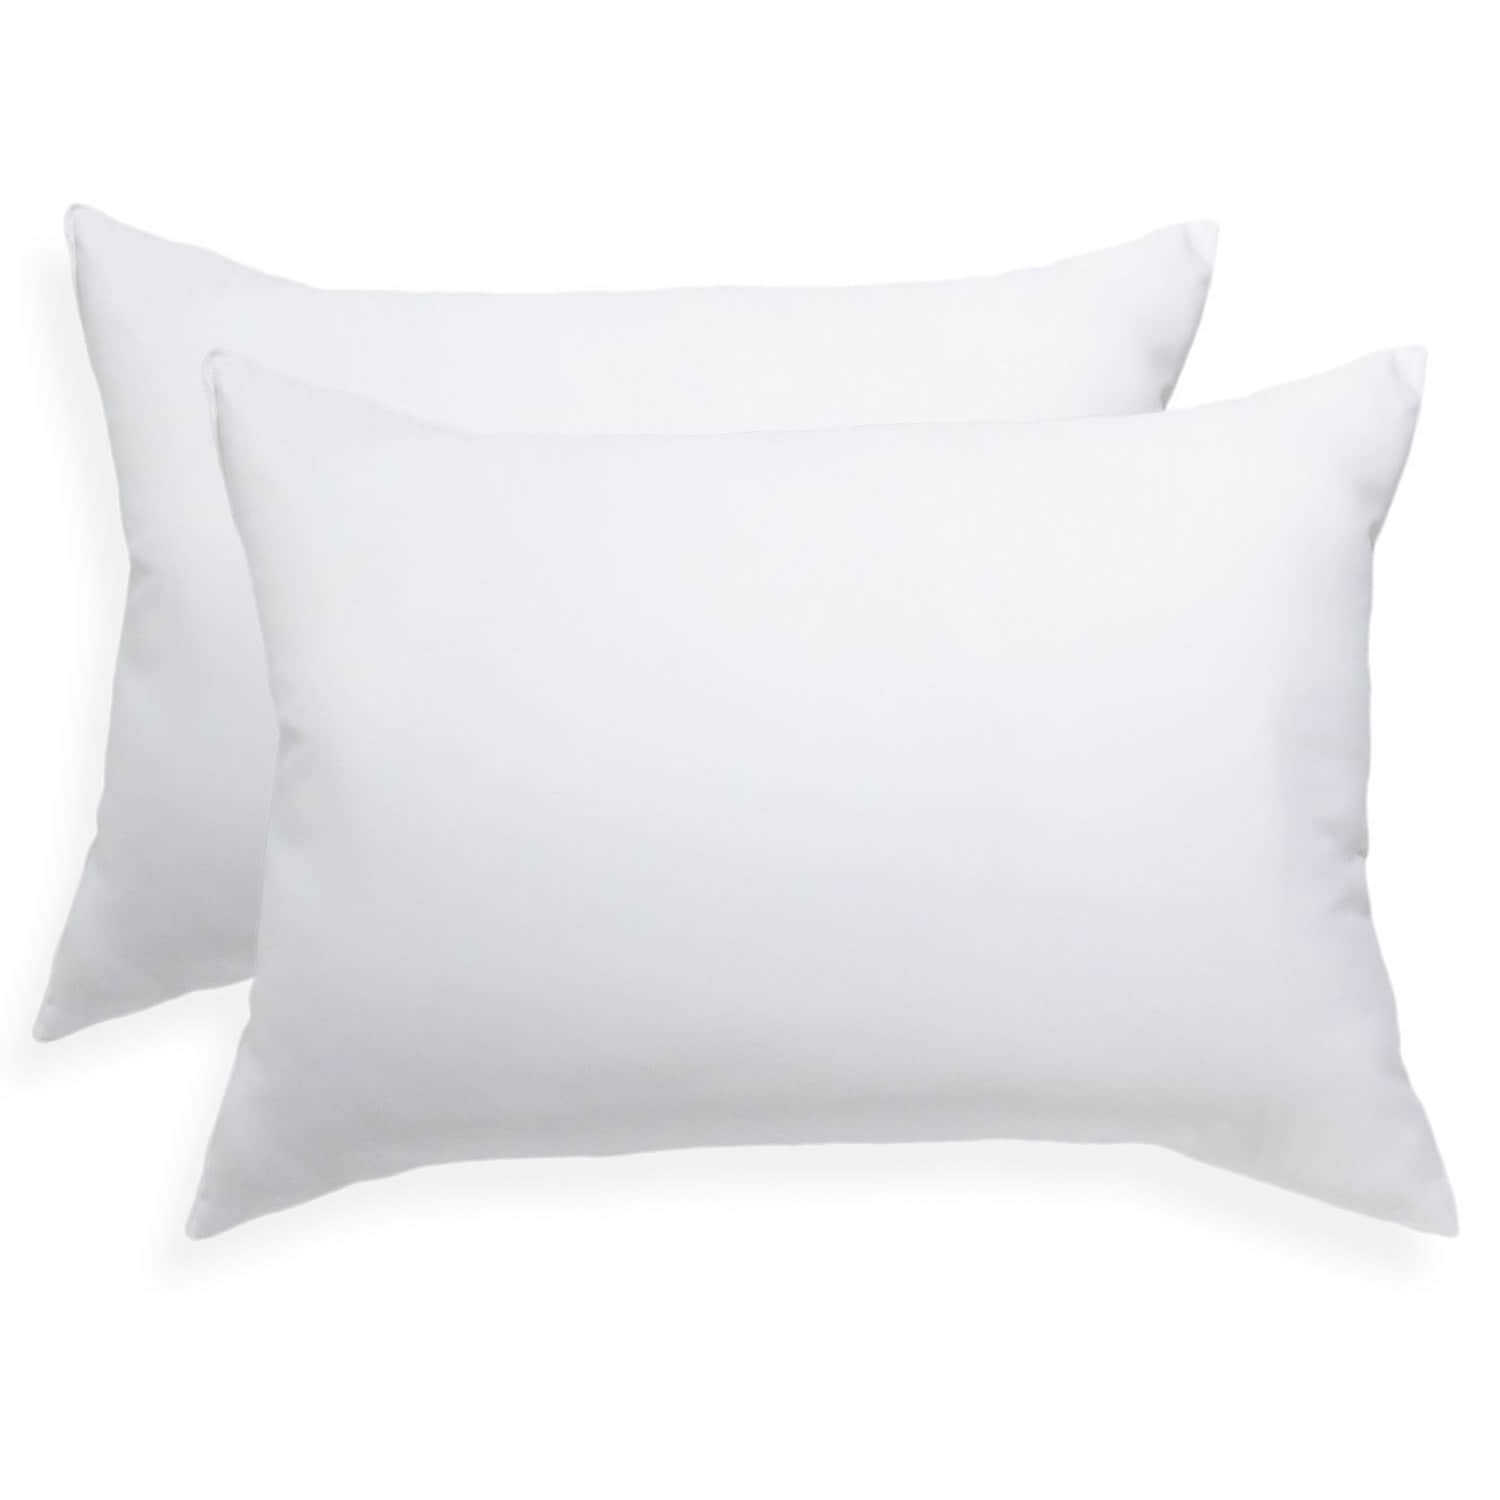 iso pedic charcoal pillow online